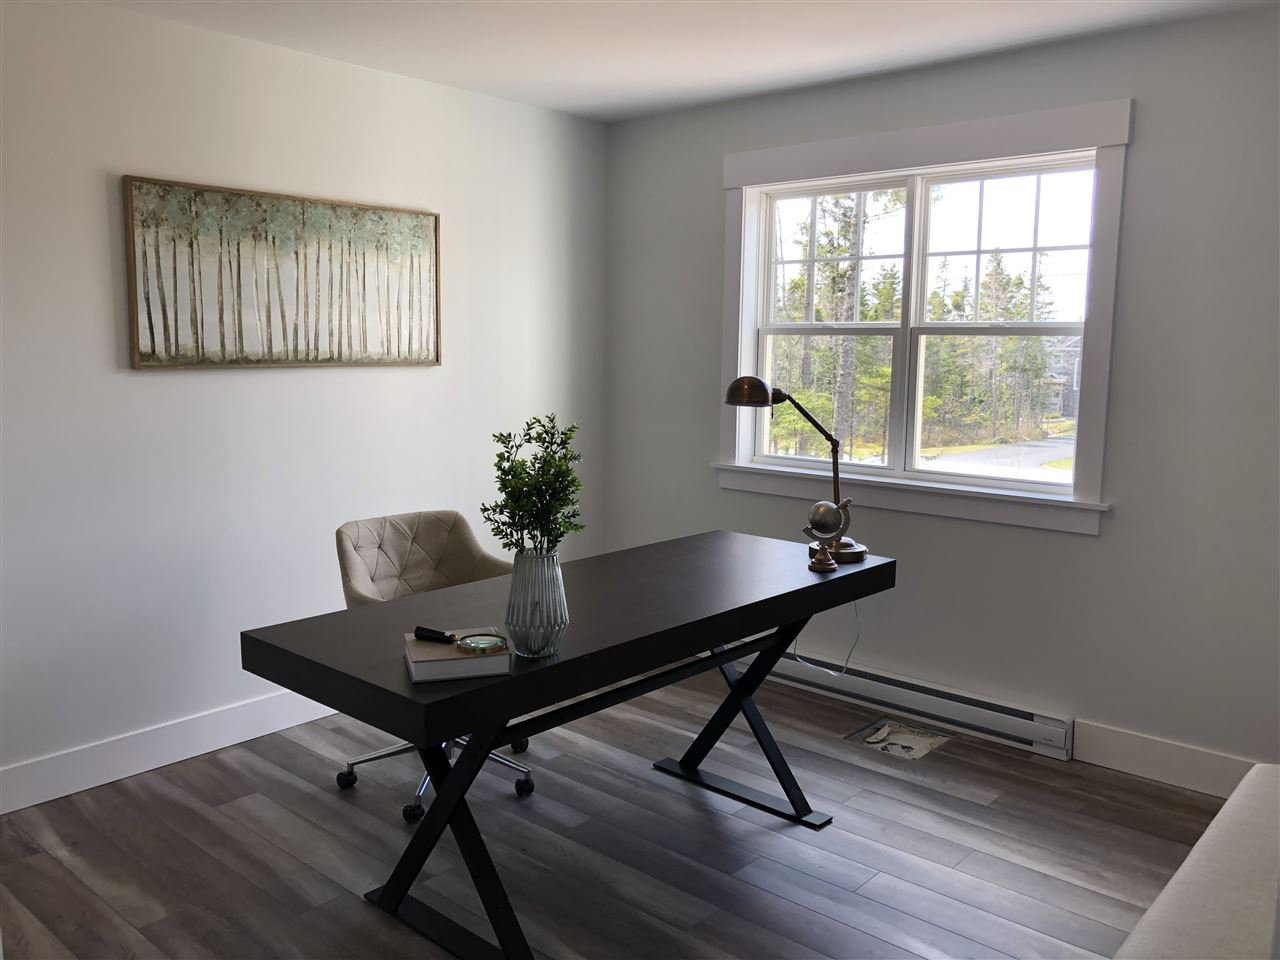 Photo 17: Photos: Lot 678 - 215 Confederation Avenue in Fall River: 30-Waverley, Fall River, Oakfield Residential for sale (Halifax-Dartmouth)  : MLS®# 201913206